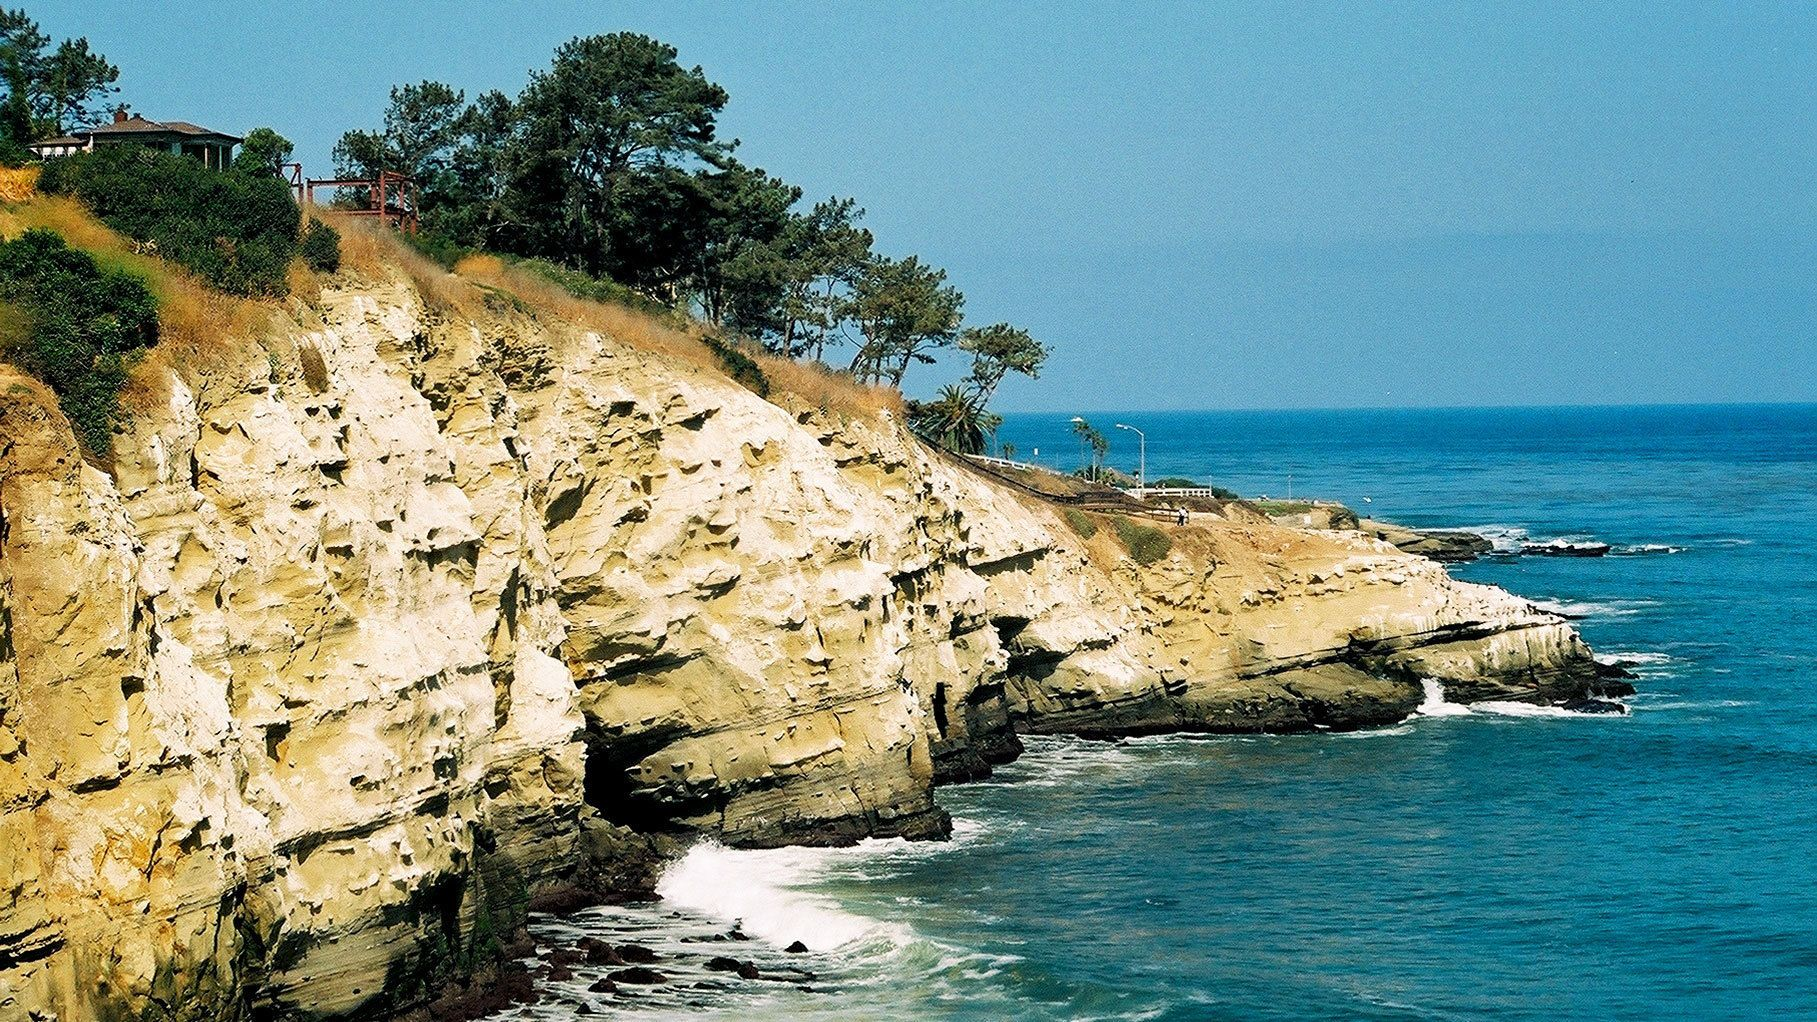 Landscape of La Jolla with sea cave in San Diego